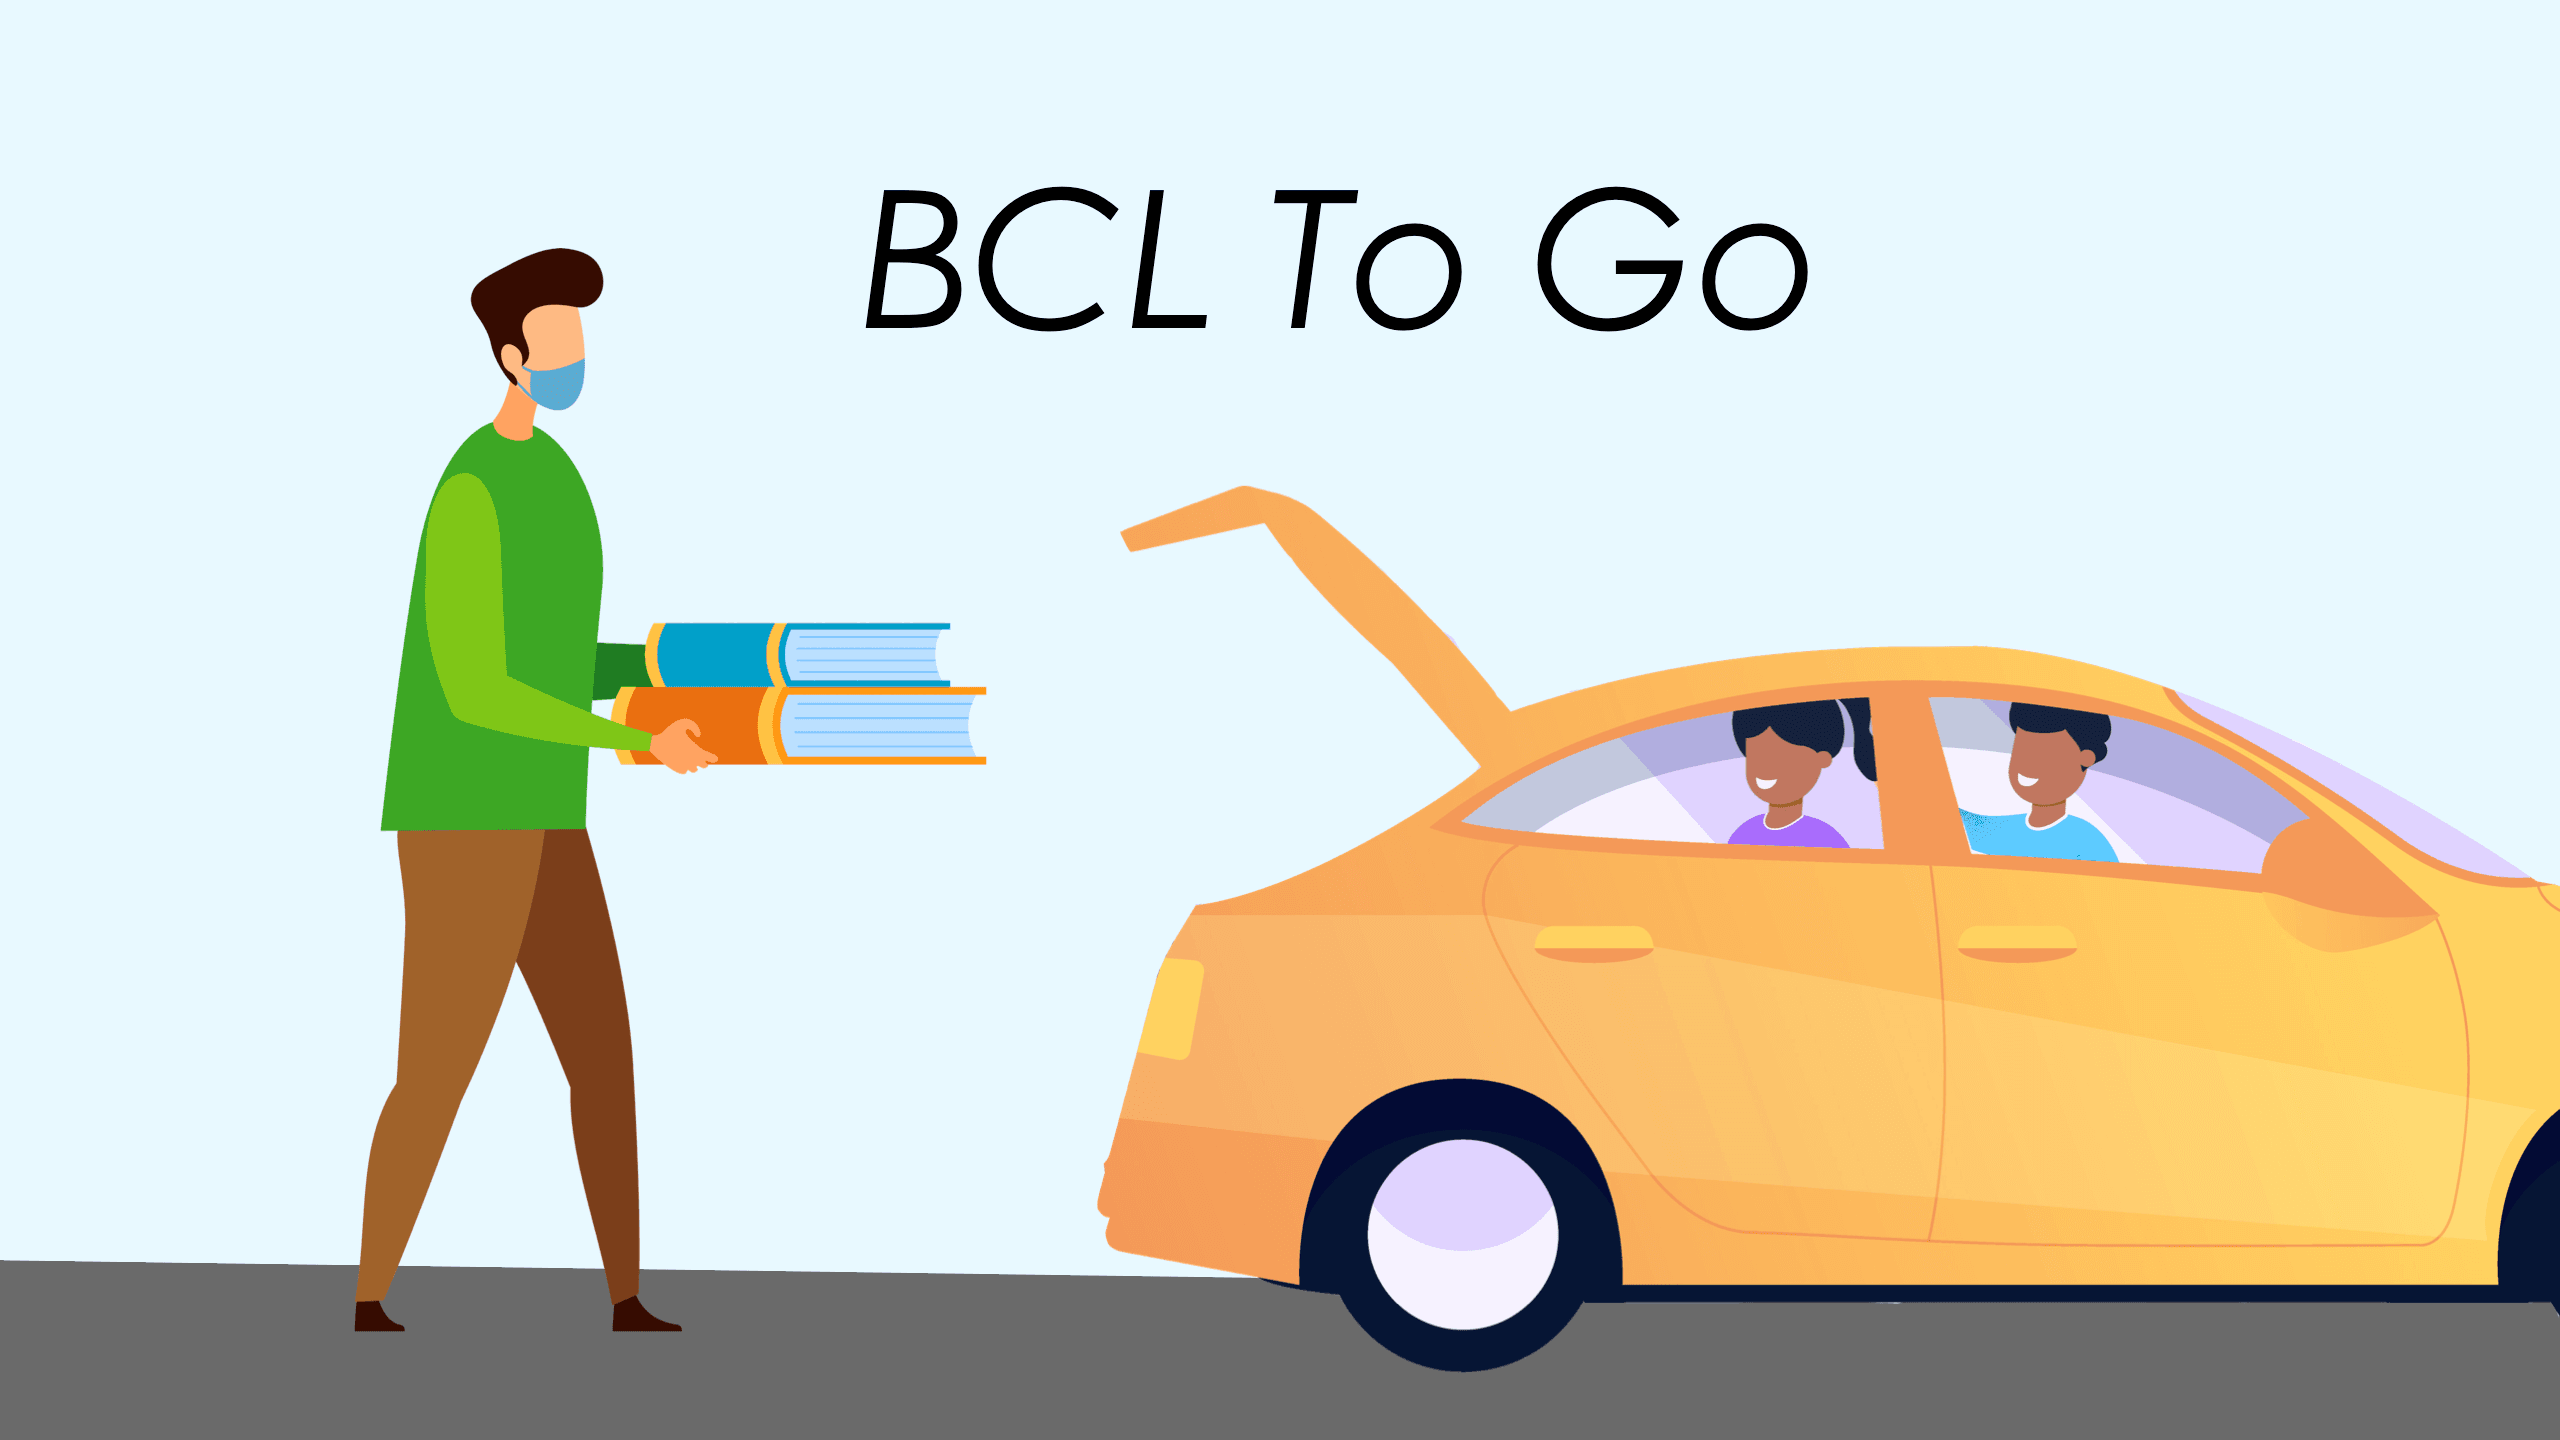 BCL To Go